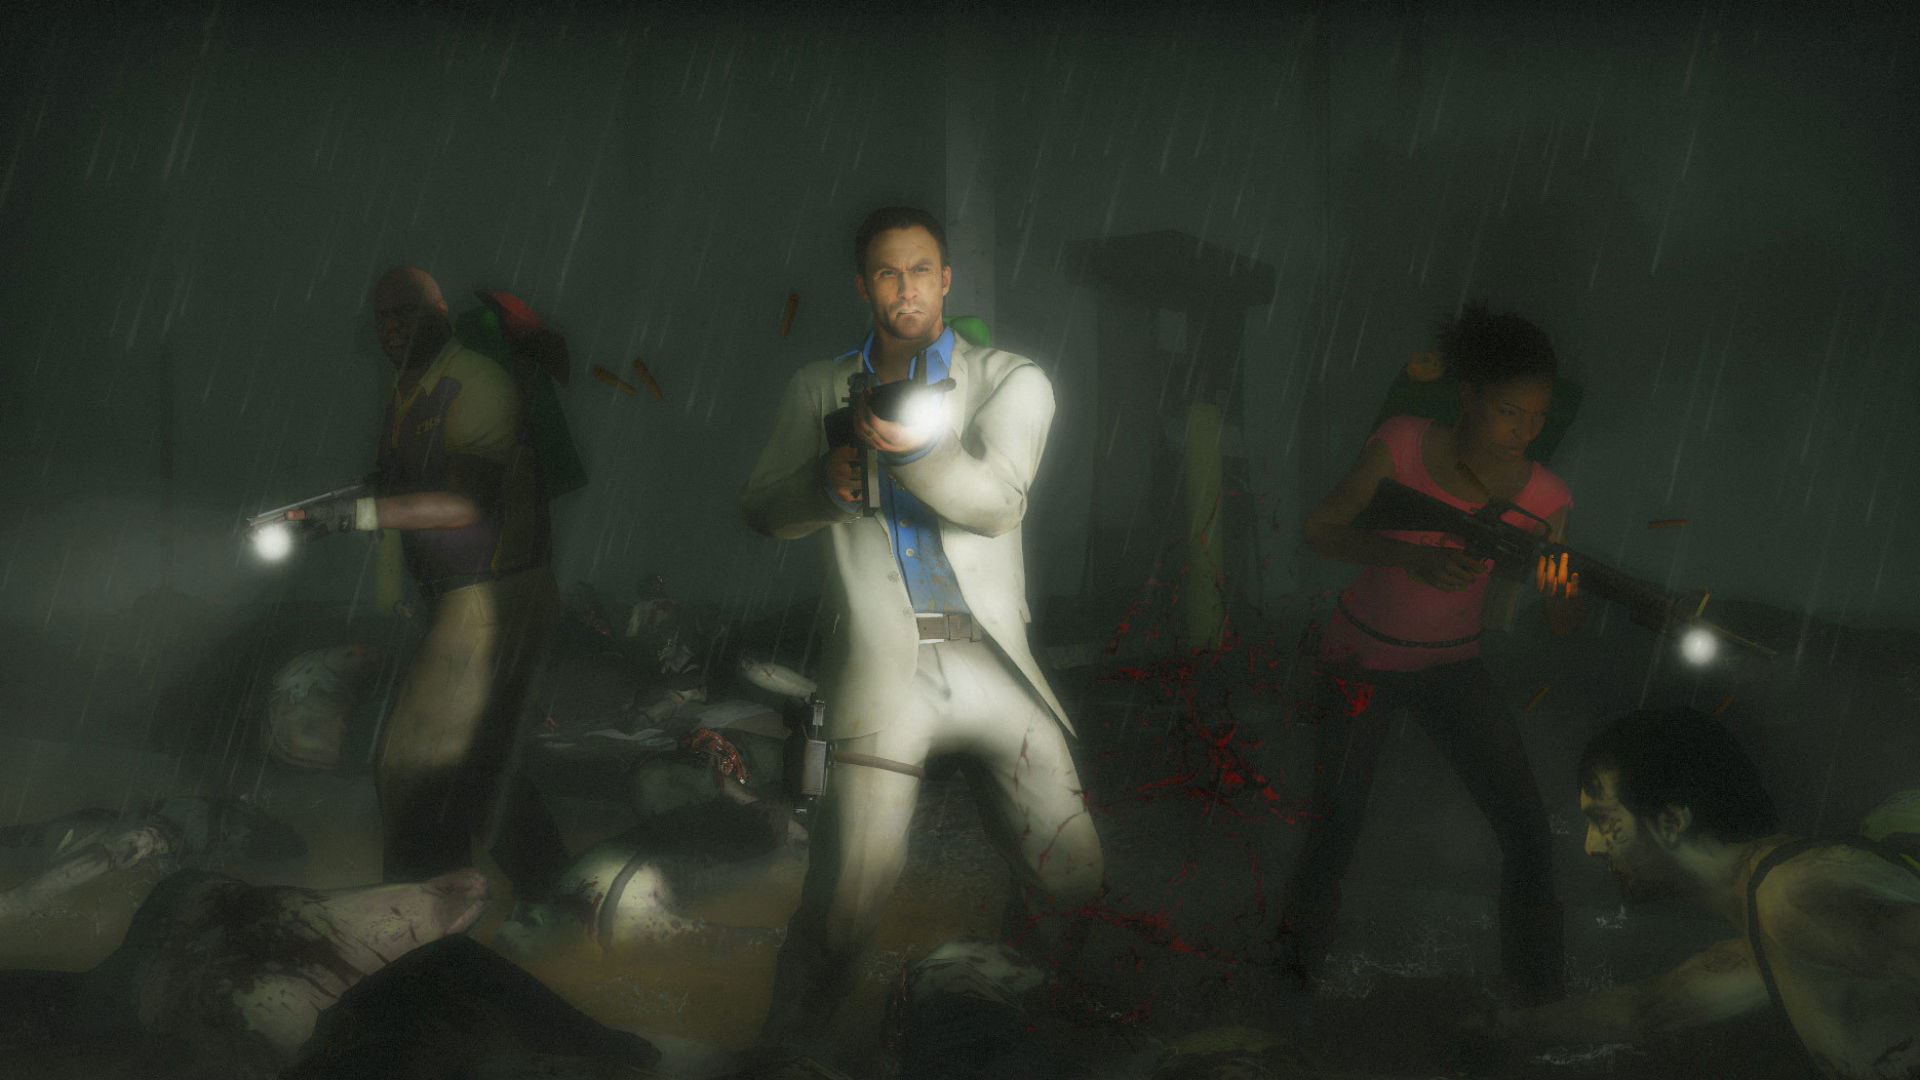 Left 4 Dead 3 release date: will we see the game in 2019? All the